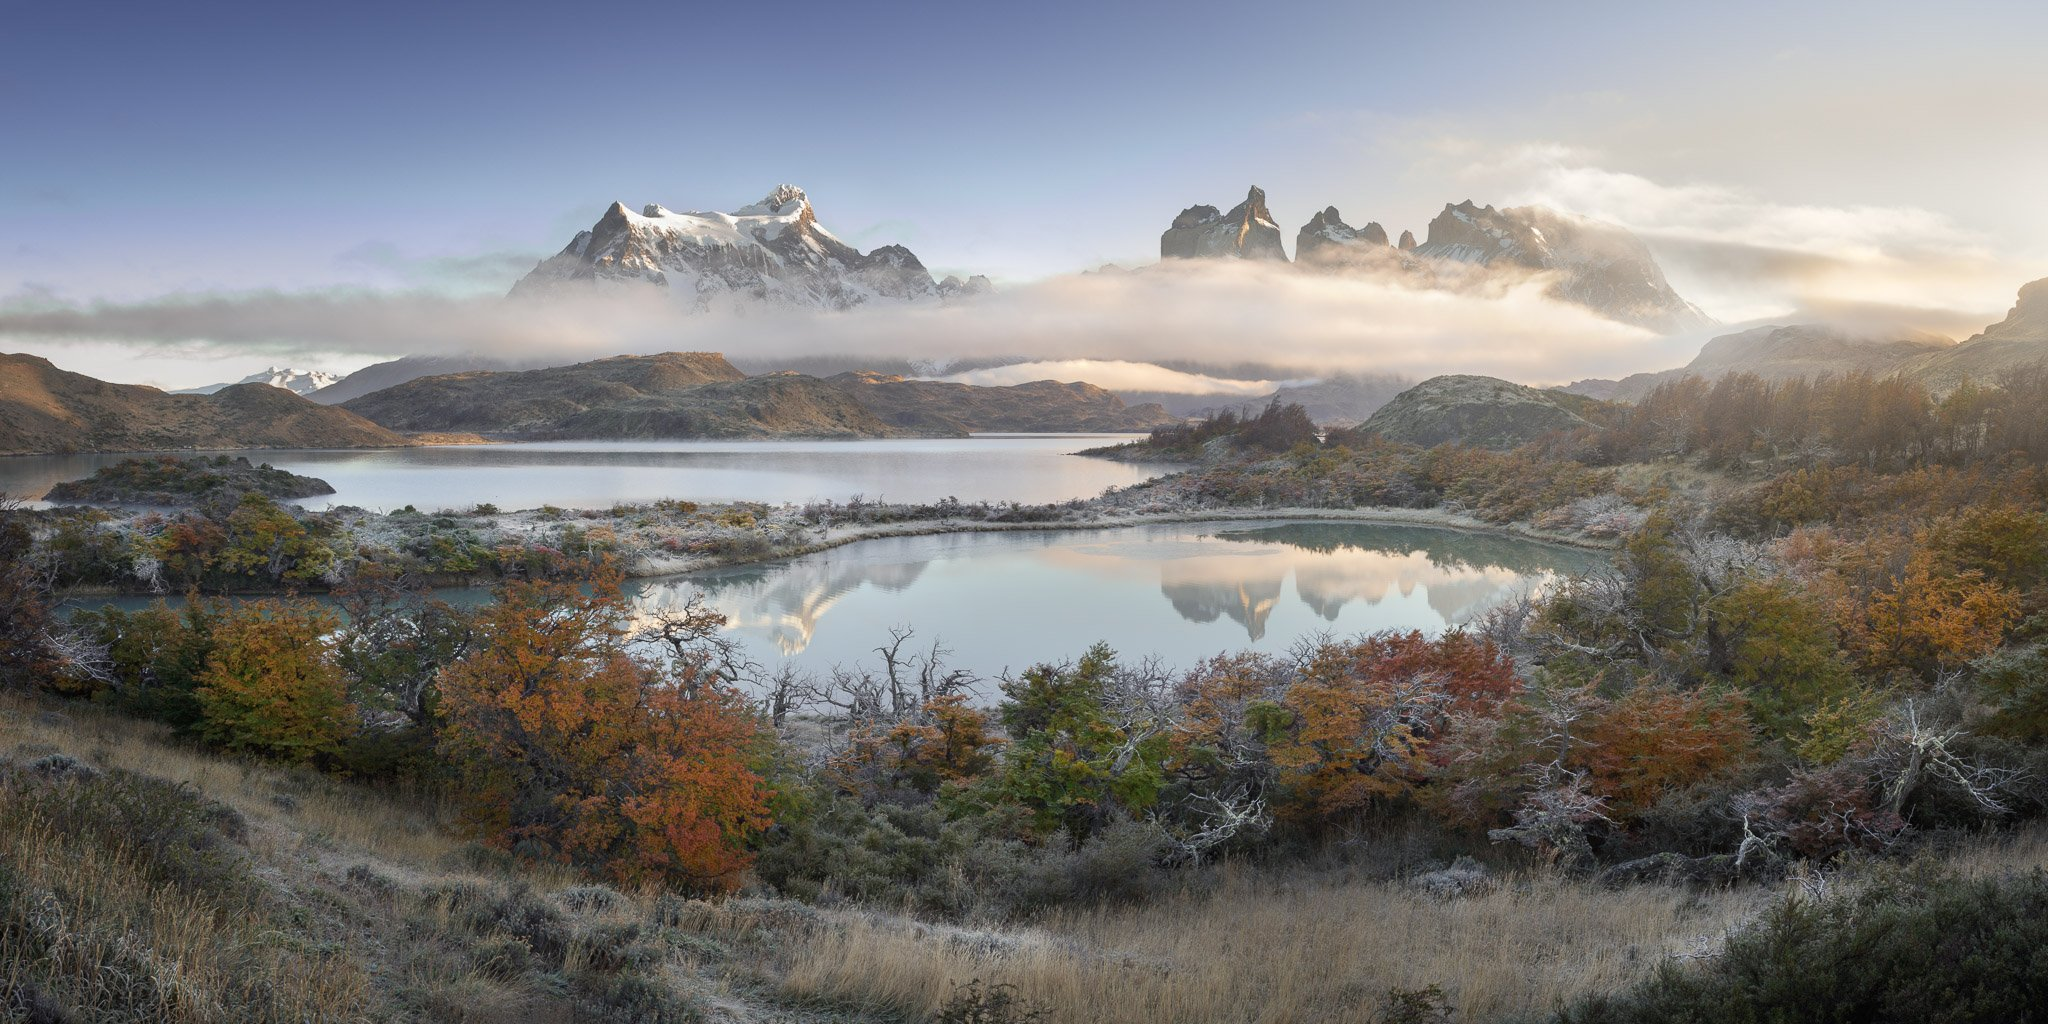 america, andes, beautiful, blue, chile, clouds, cuernos, del, frost, glacier, hiking, hill, ice, lake, landmark, landscape, light, mirror, morning, mountain, national, nature, orange, outdoor, paine, pano, panorama, panoramic, park, patagonia, peak, pehoe, anshar